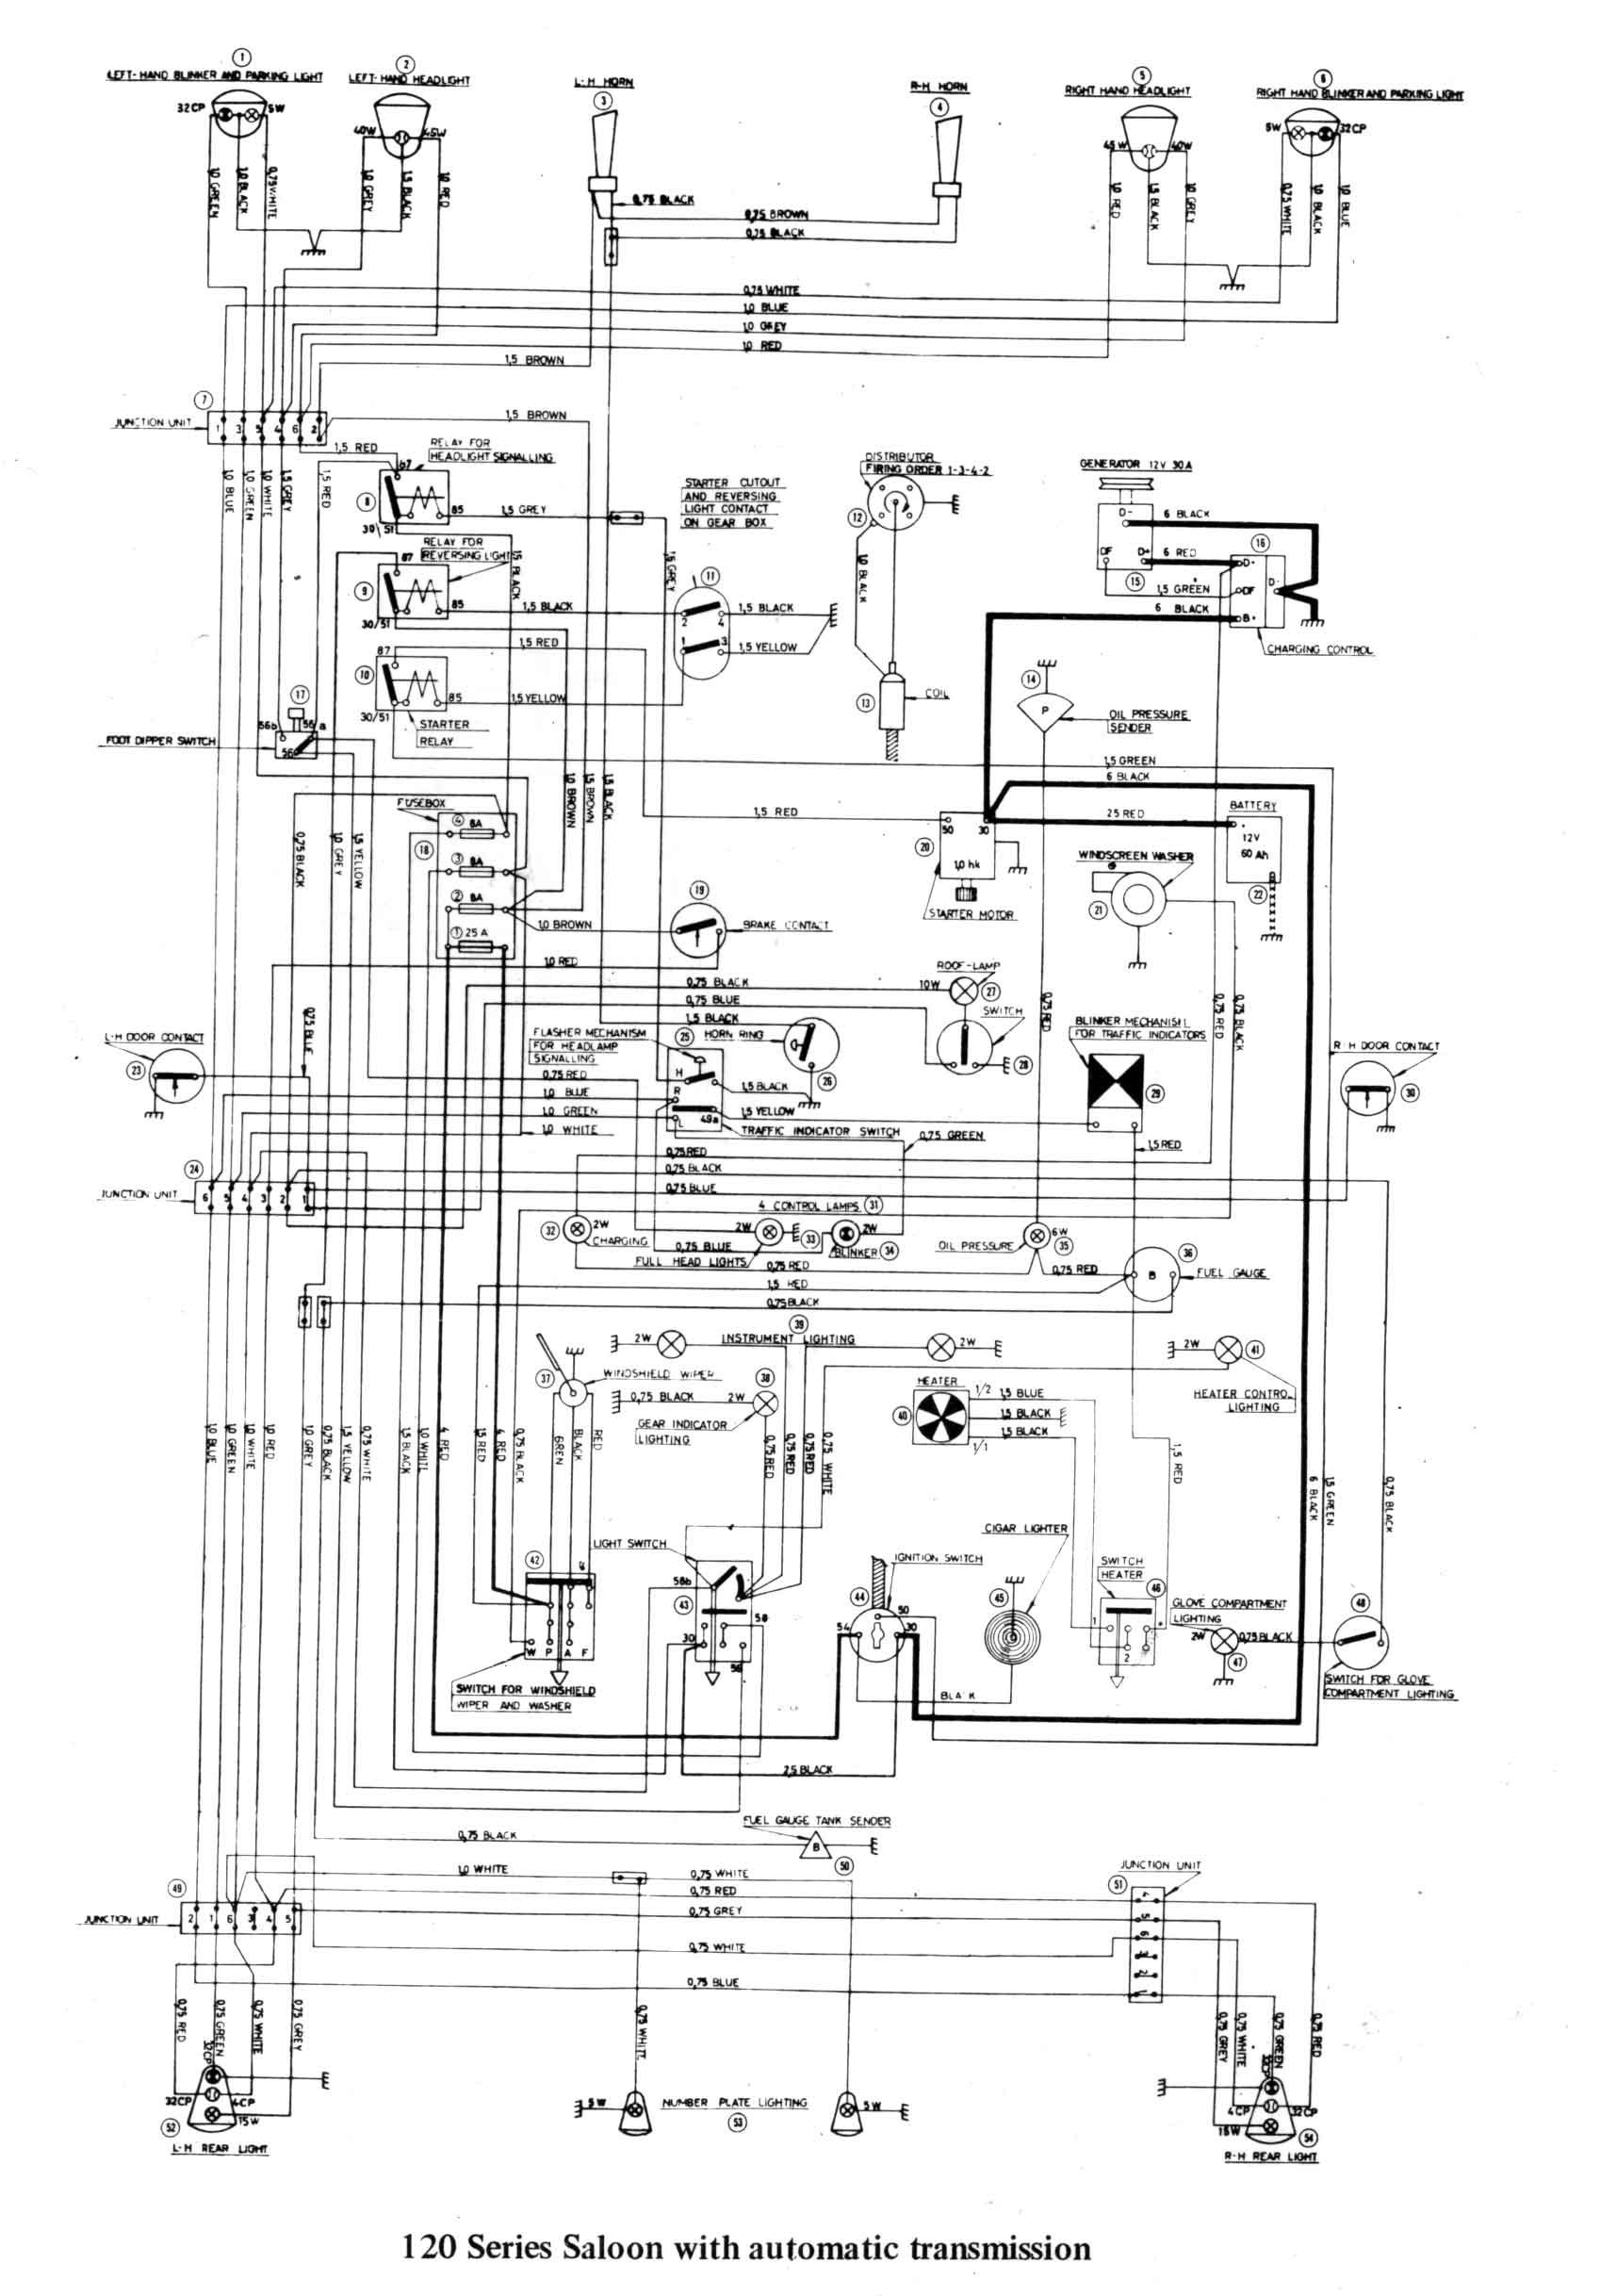 Bus Air Brake System Diagram Volvo Brake Schematics Wire Center • Of Bus Air Brake System Diagram Wiring Diagram In A Car Valid Light Rx Lovely Car Stereo Wiring